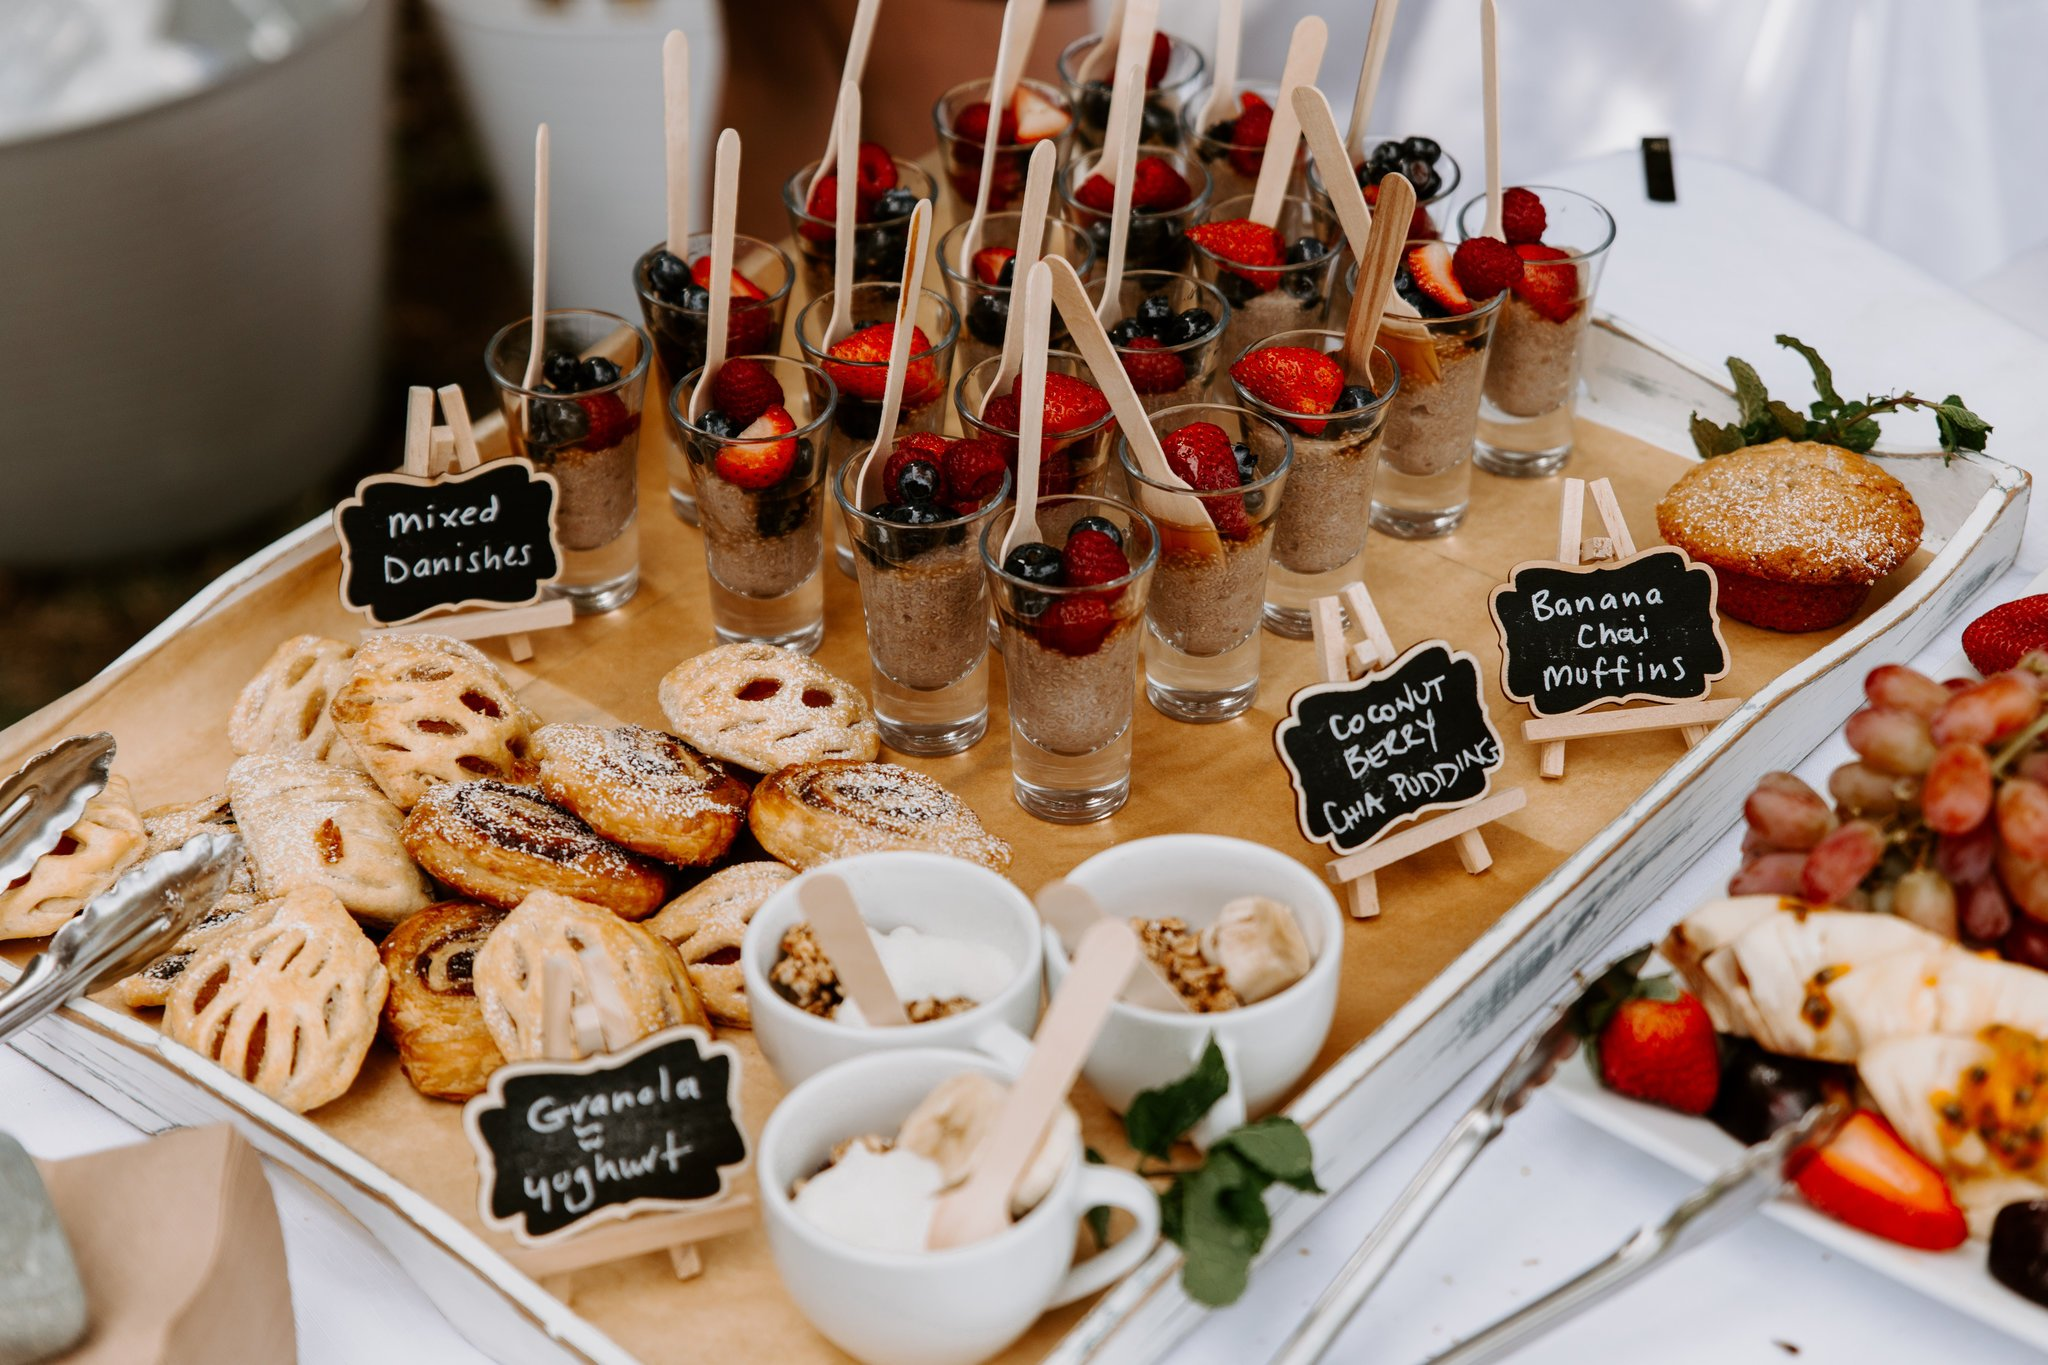 Breakfast wedding pastries